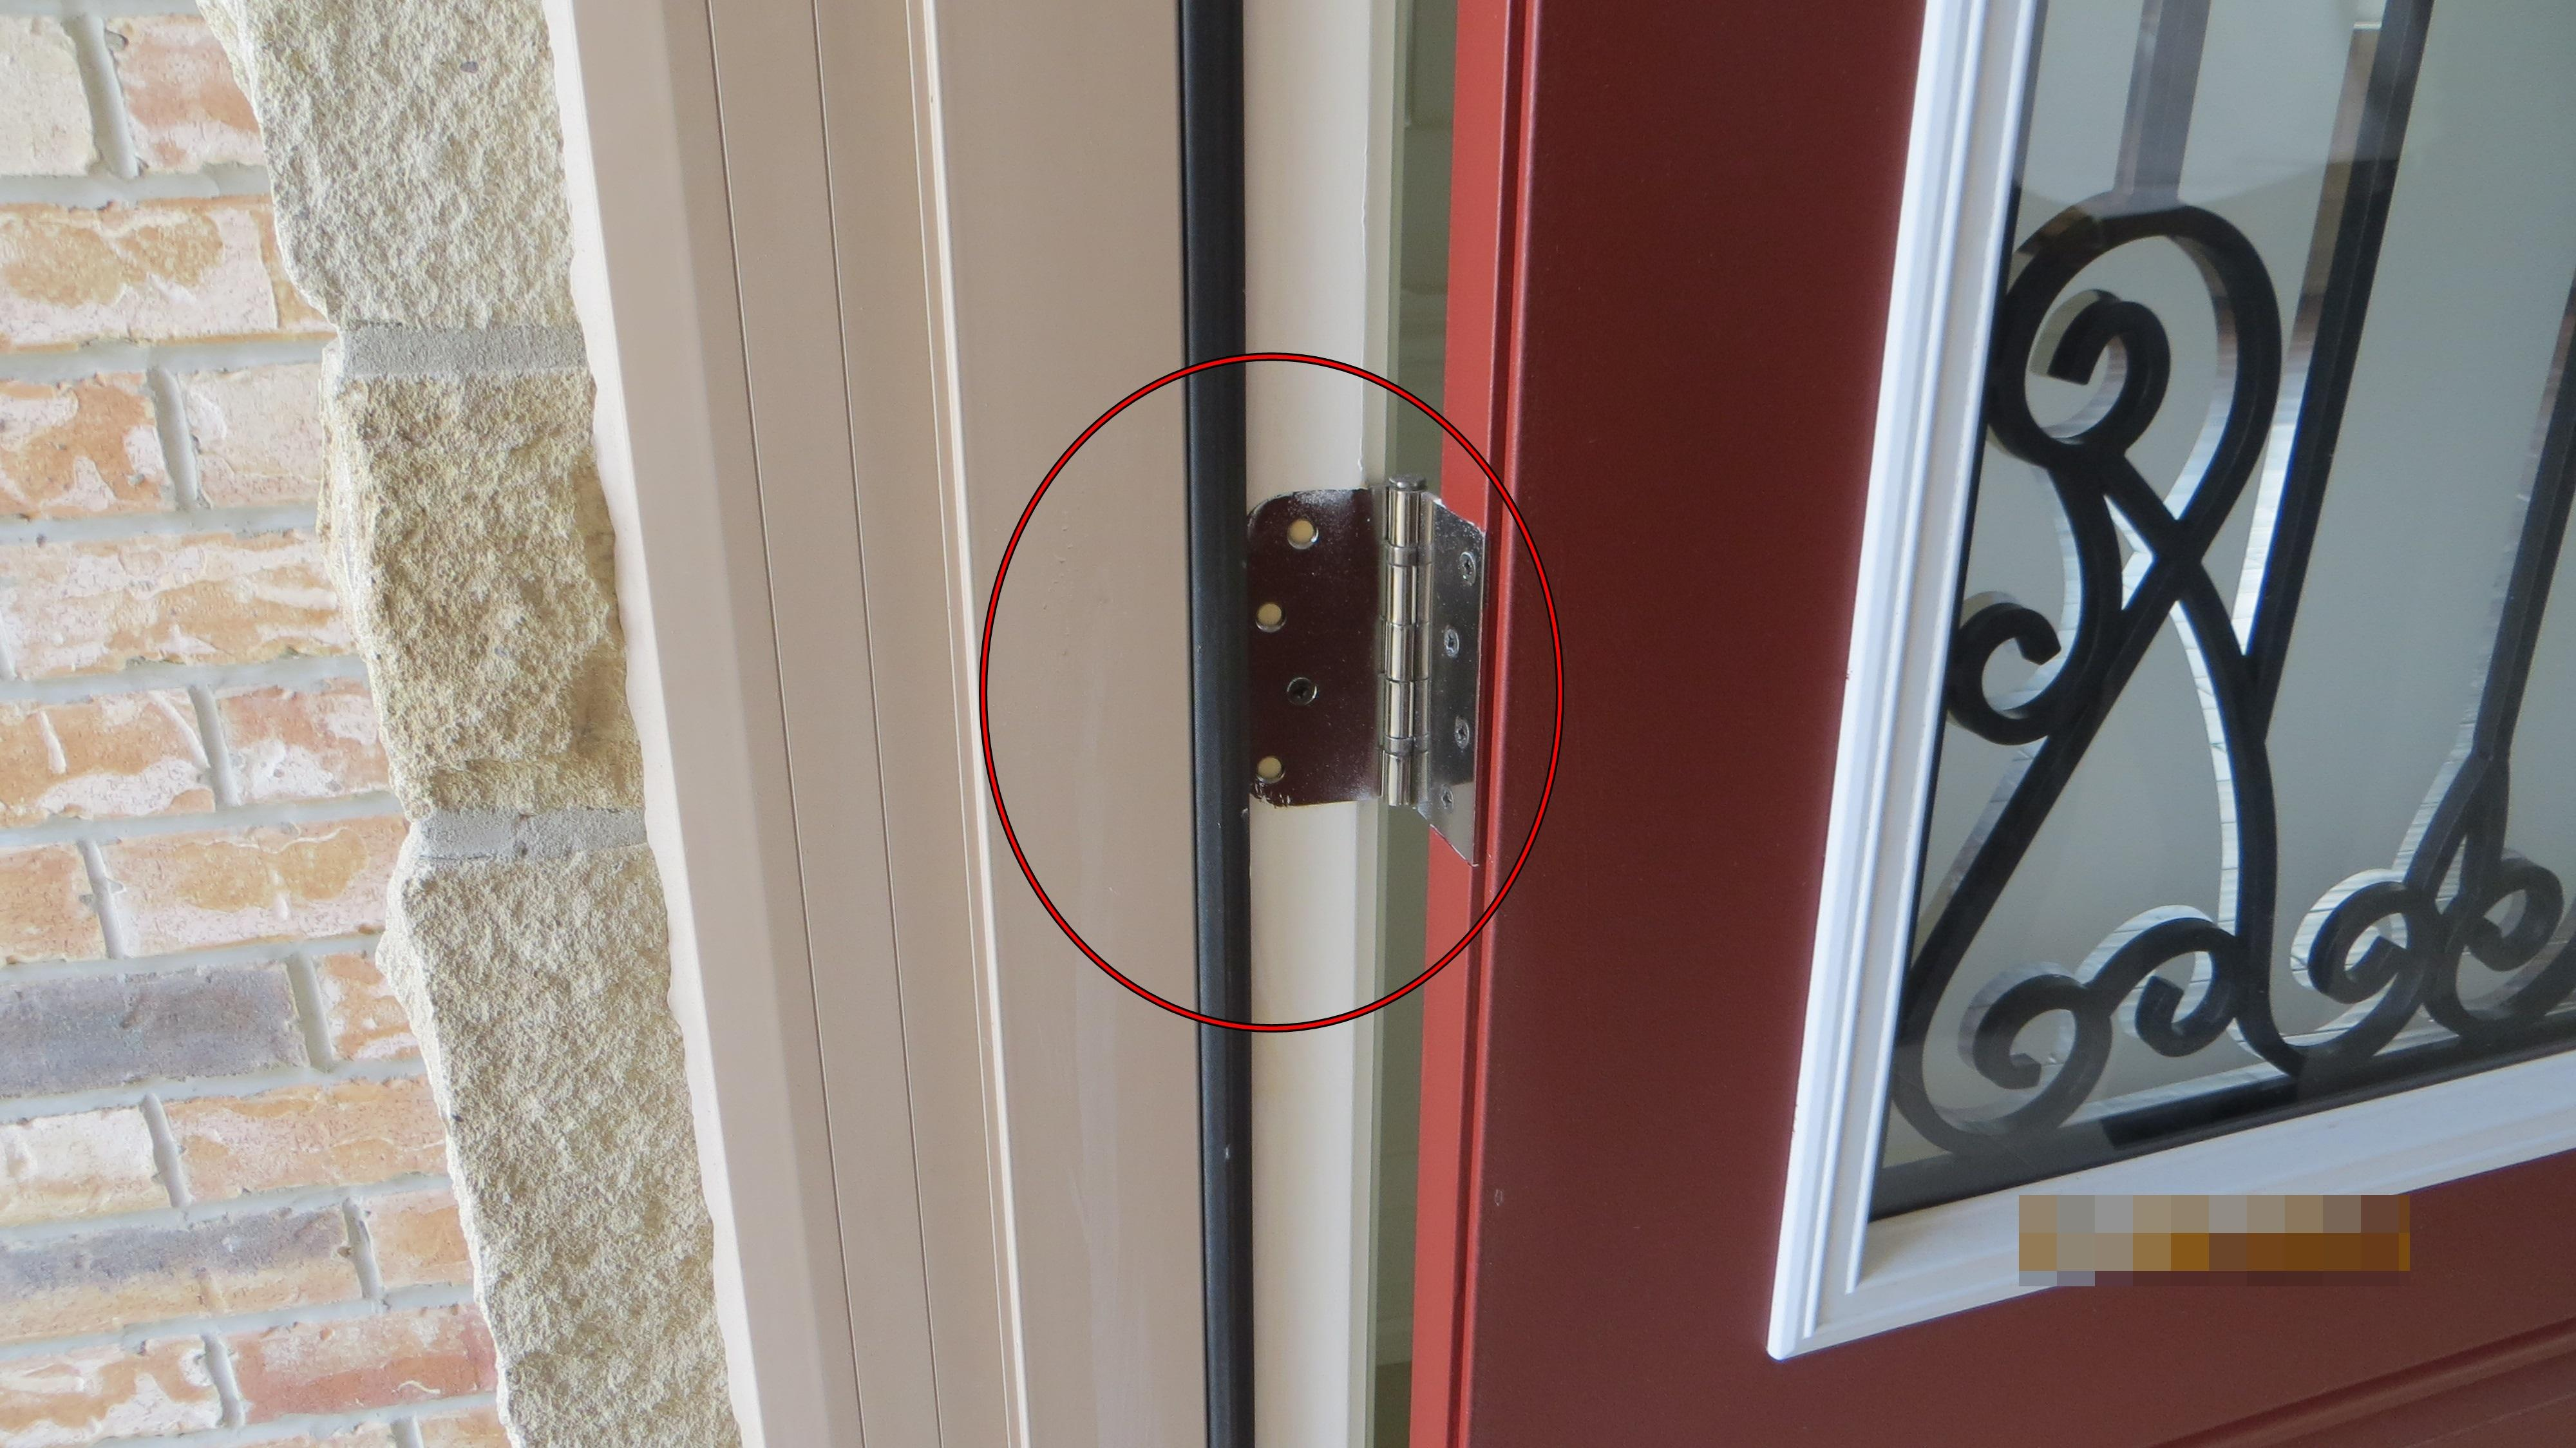 Only one screw for entrance door